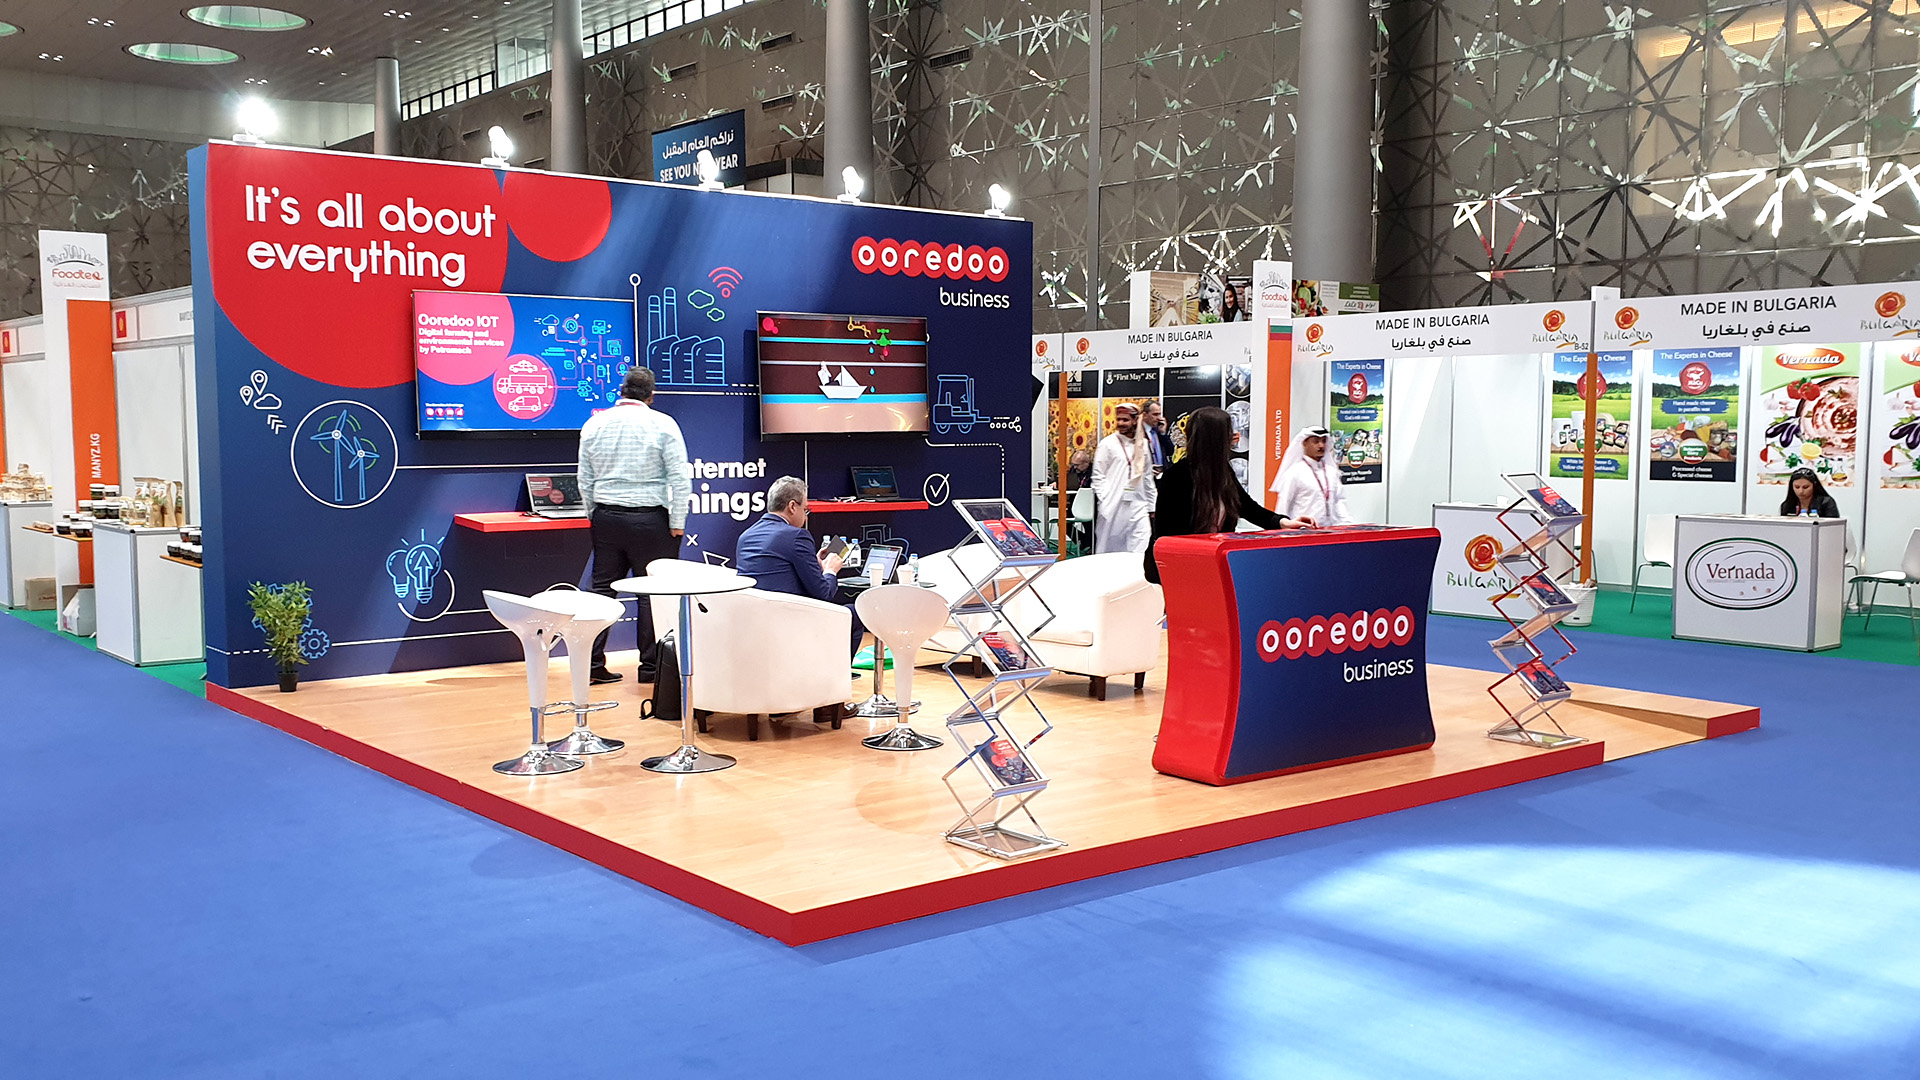 Ooredoo Exhibition Stand at Agriteq 2019 fabricated and installed by ME Visual, Qatar